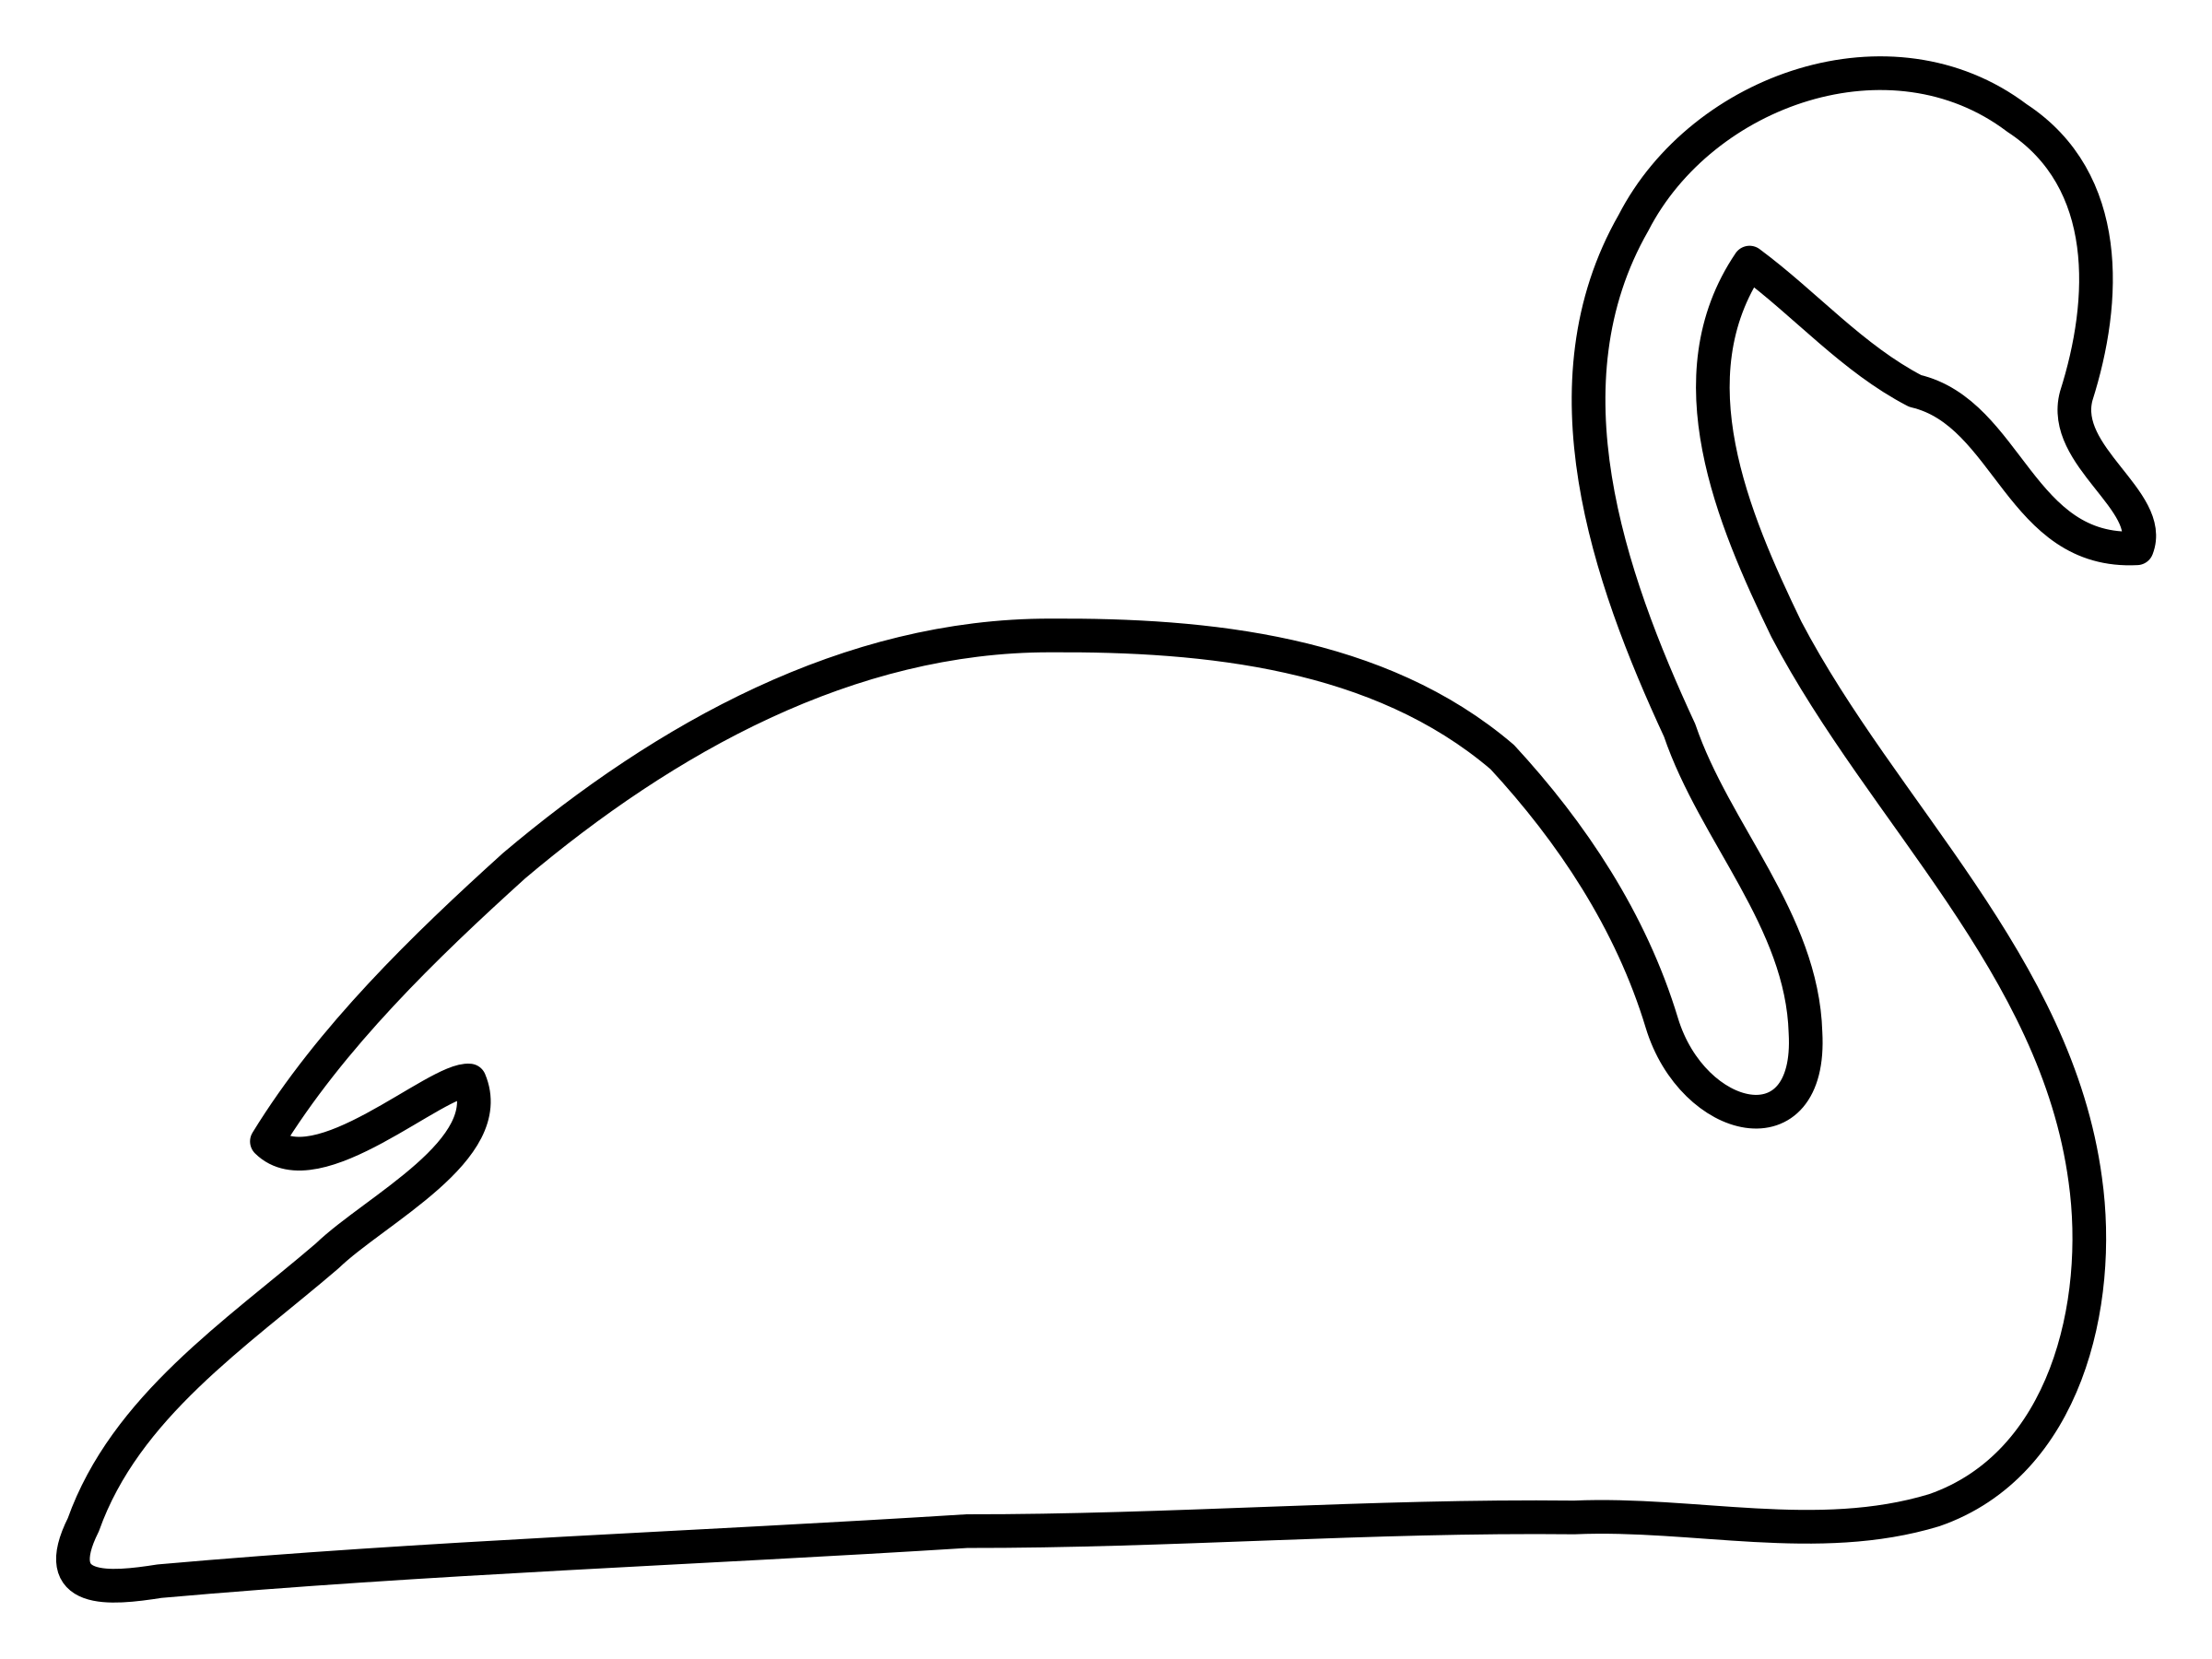 Swan silhouette png. White icons free and